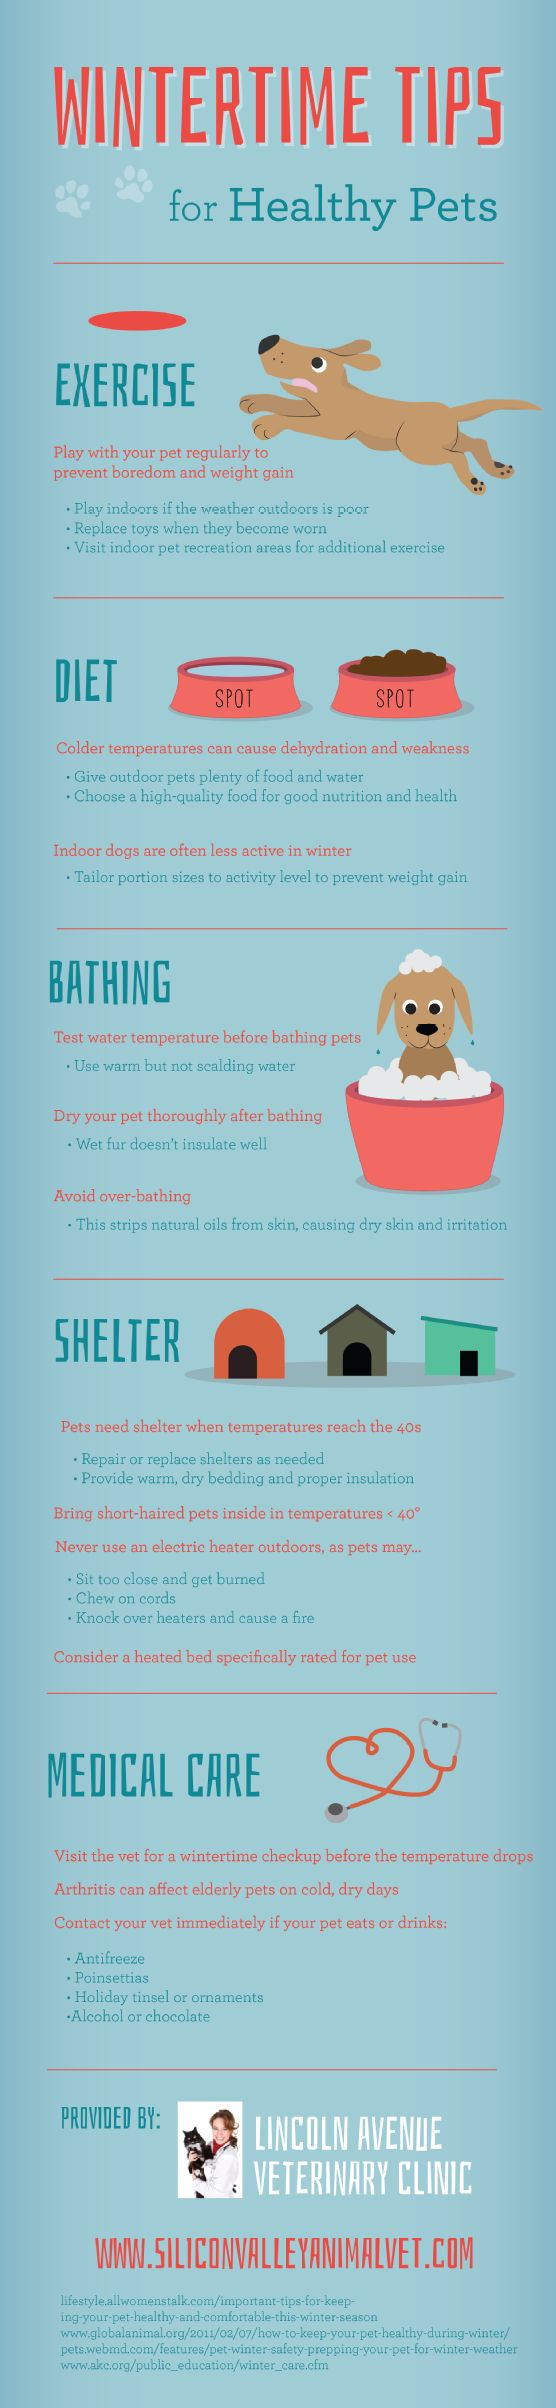 Wintertime Tips To Take Care Of Your Dogs In Winter